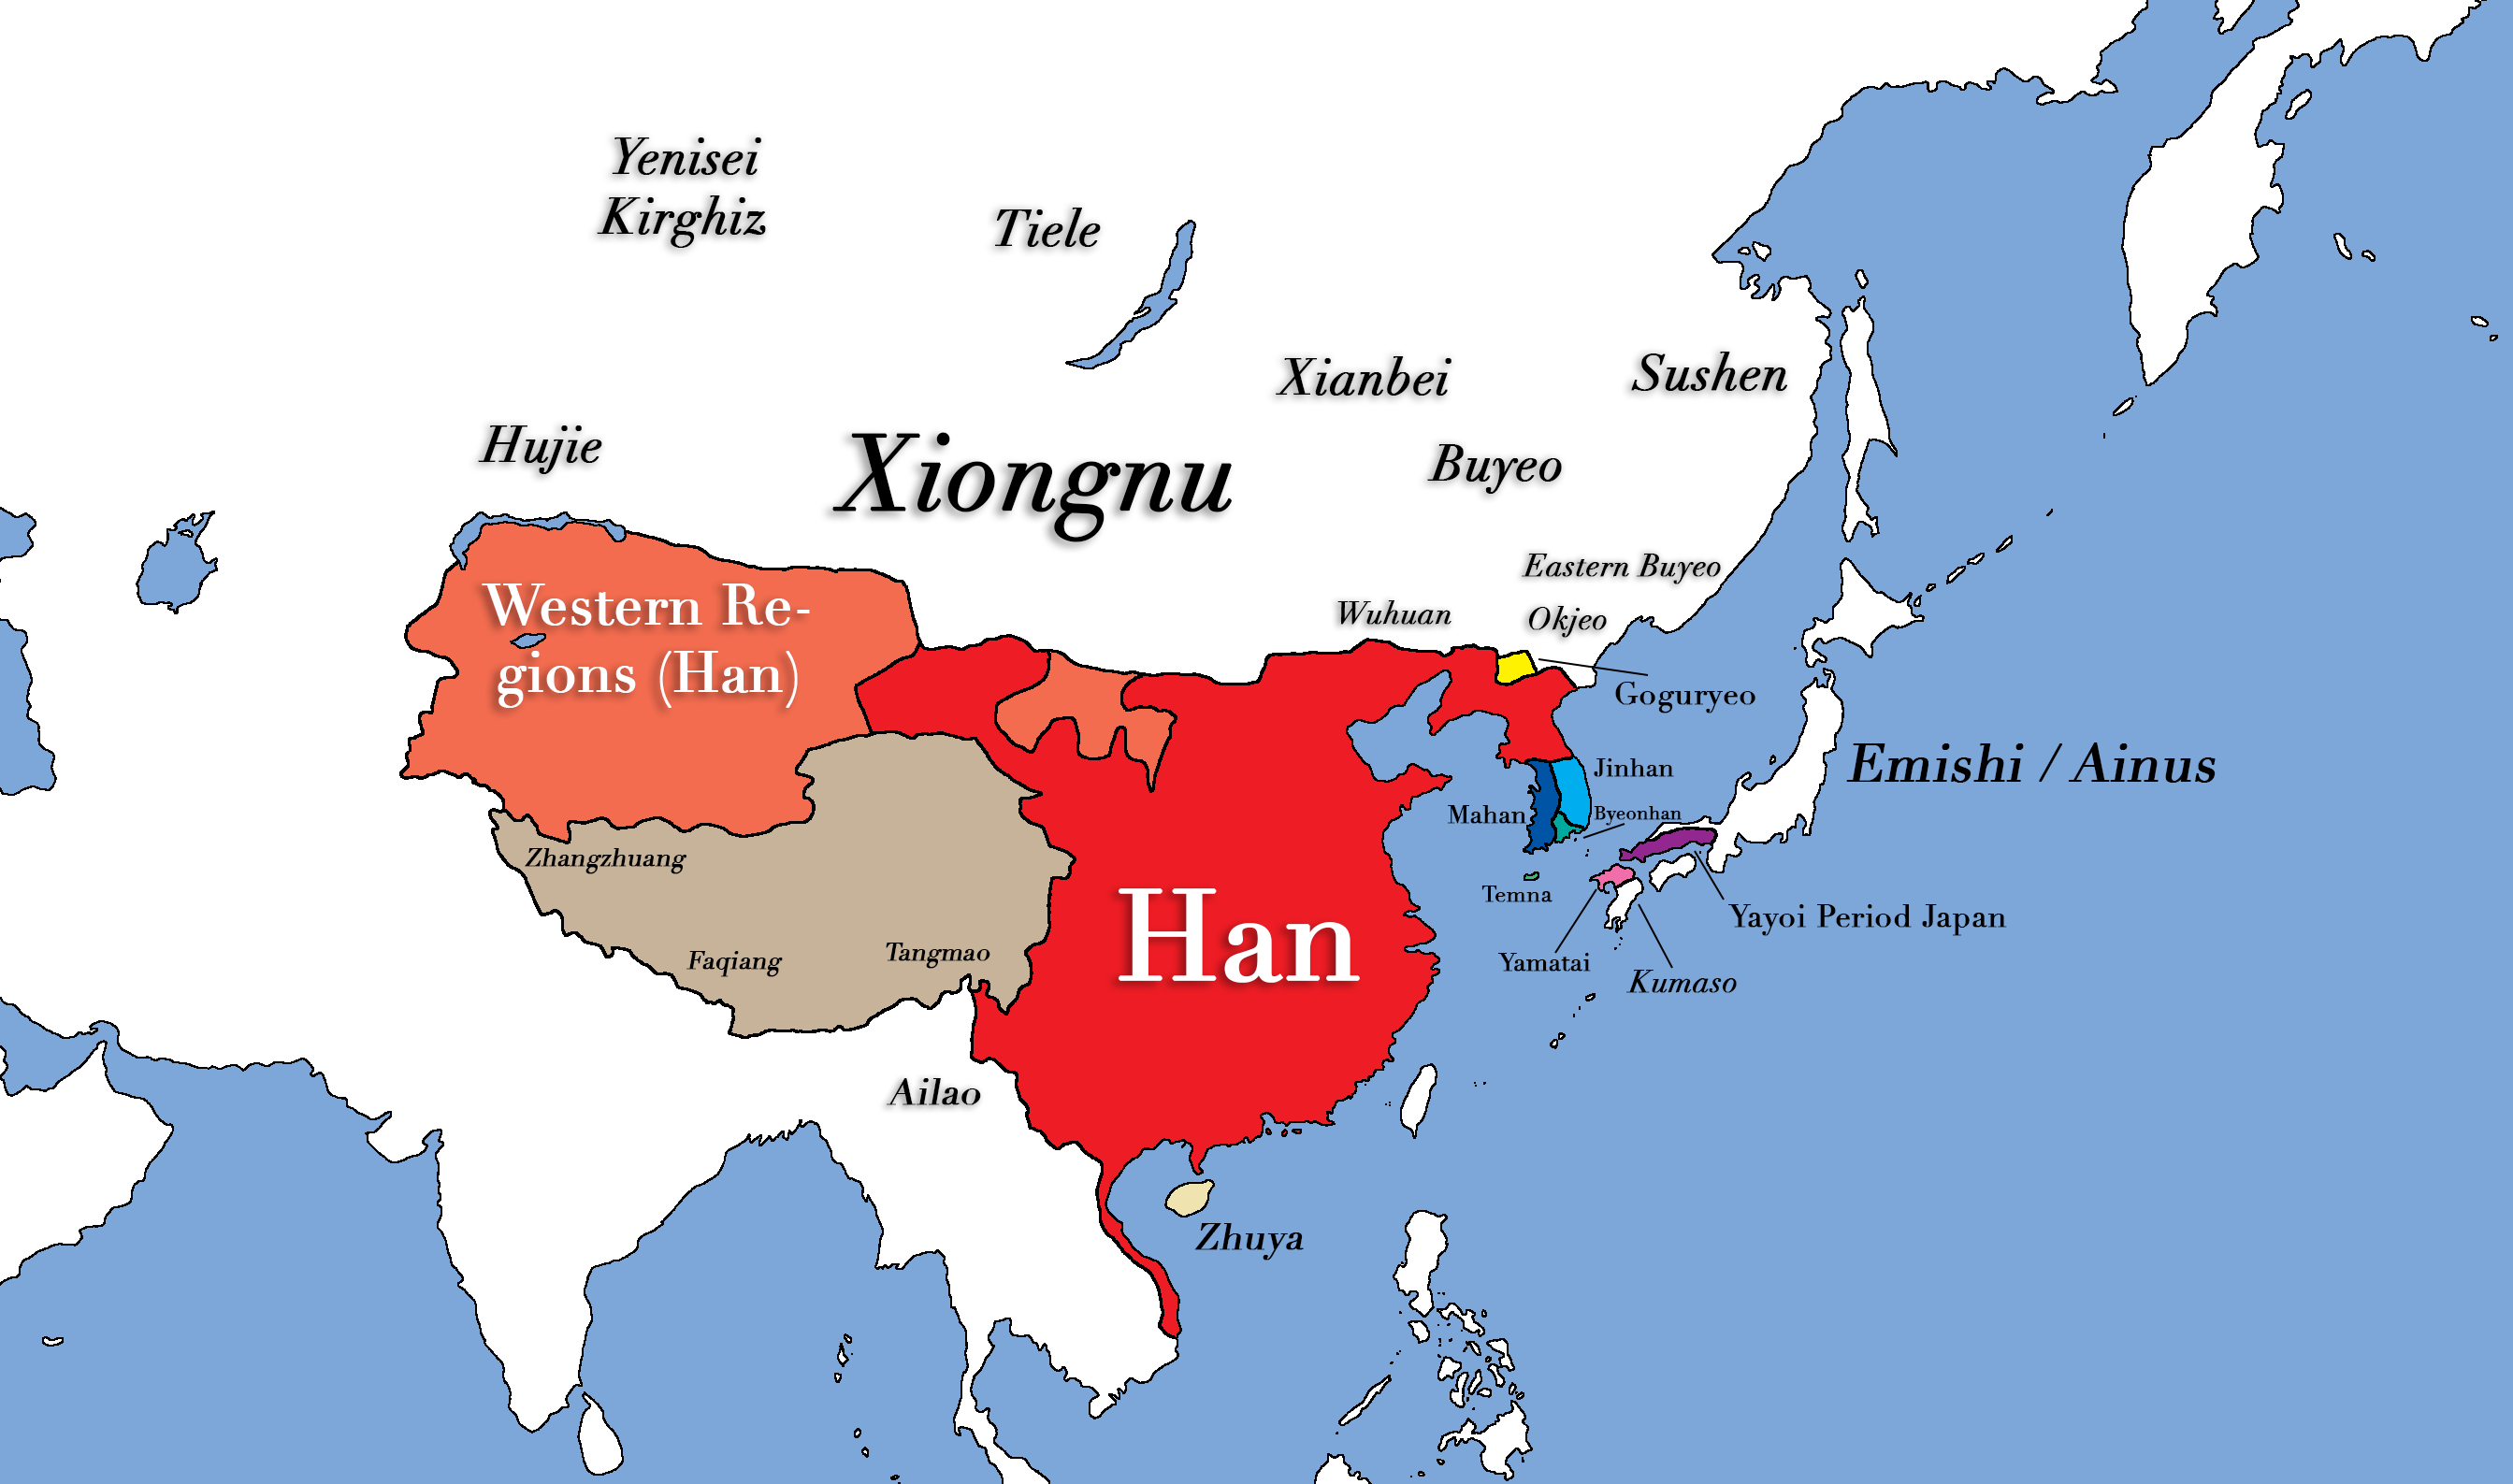 East asia in the year 1 ce illustration ancient history encyclopedia east asia in the year 1 ce gumiabroncs Choice Image